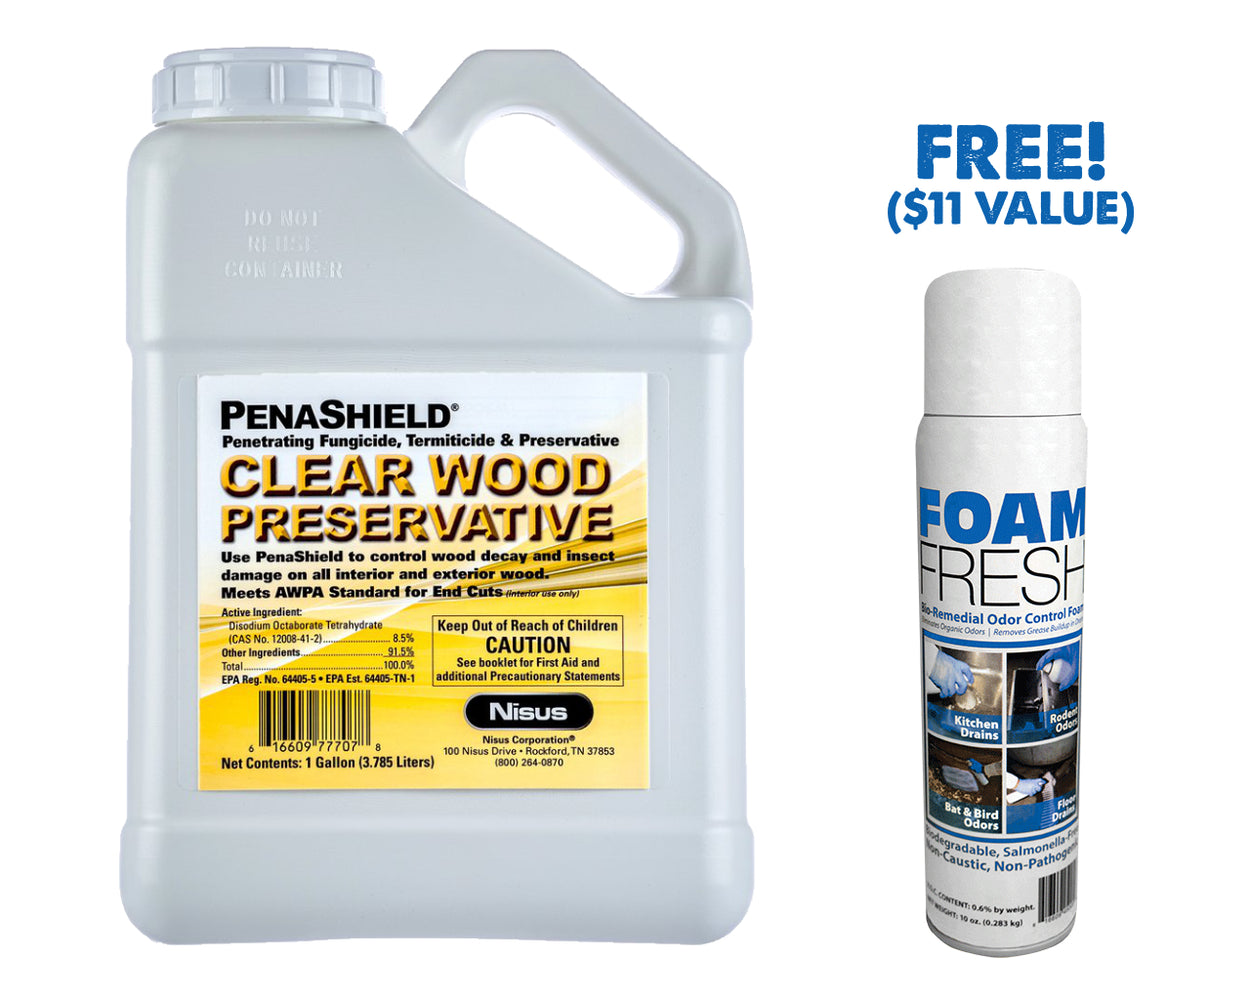 Penashield Wood Treatment and Preservative (with FREE Foam Fresh)